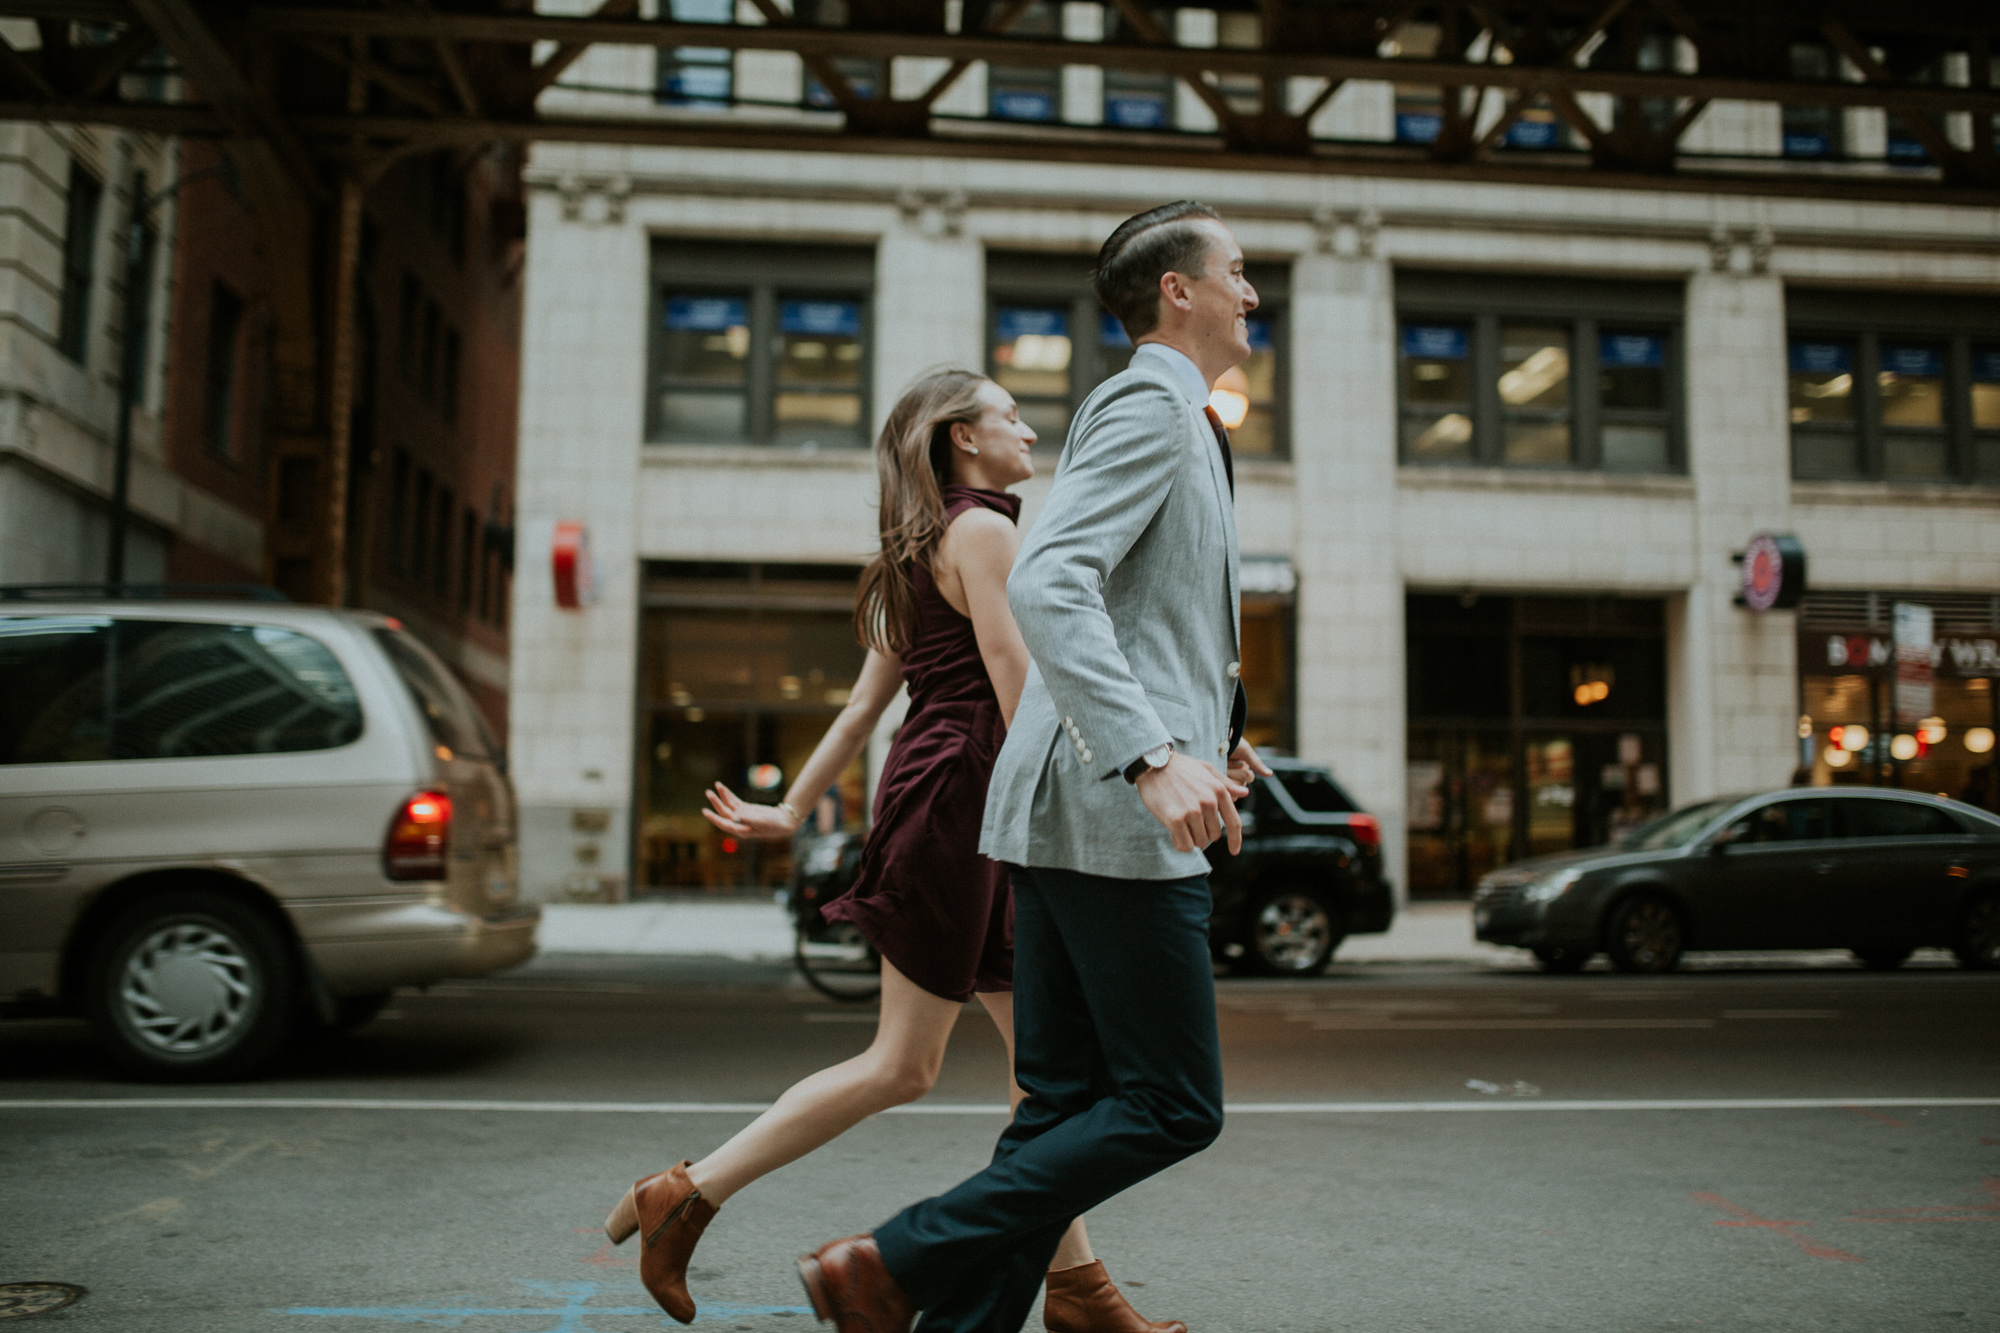 chicago_engagement_photography-0136.jpg